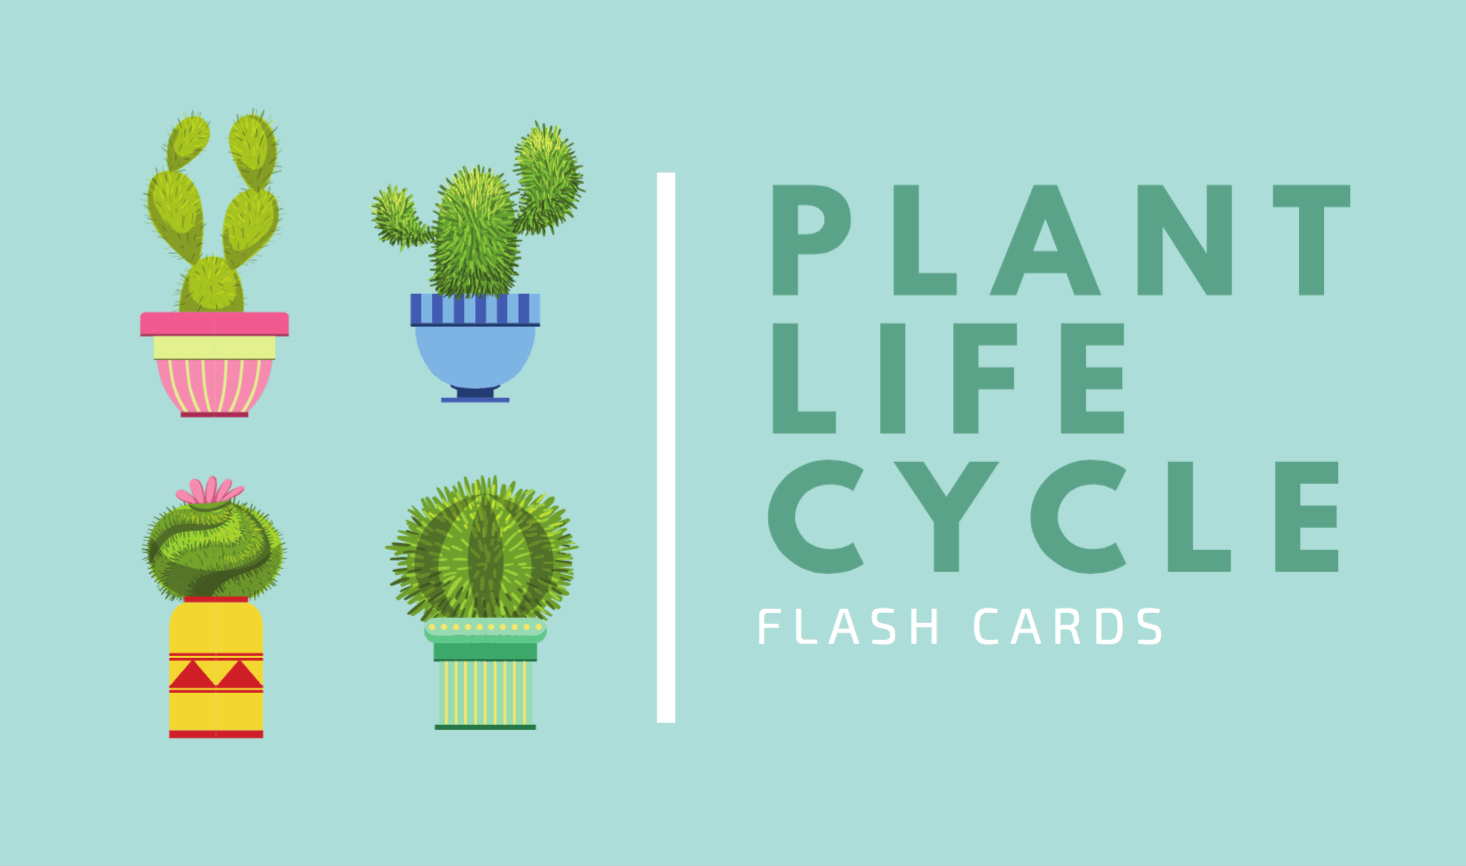 Free Online Flashcard Maker: Design Custom Flashcards - Canva - Free Printable Flash Card Maker